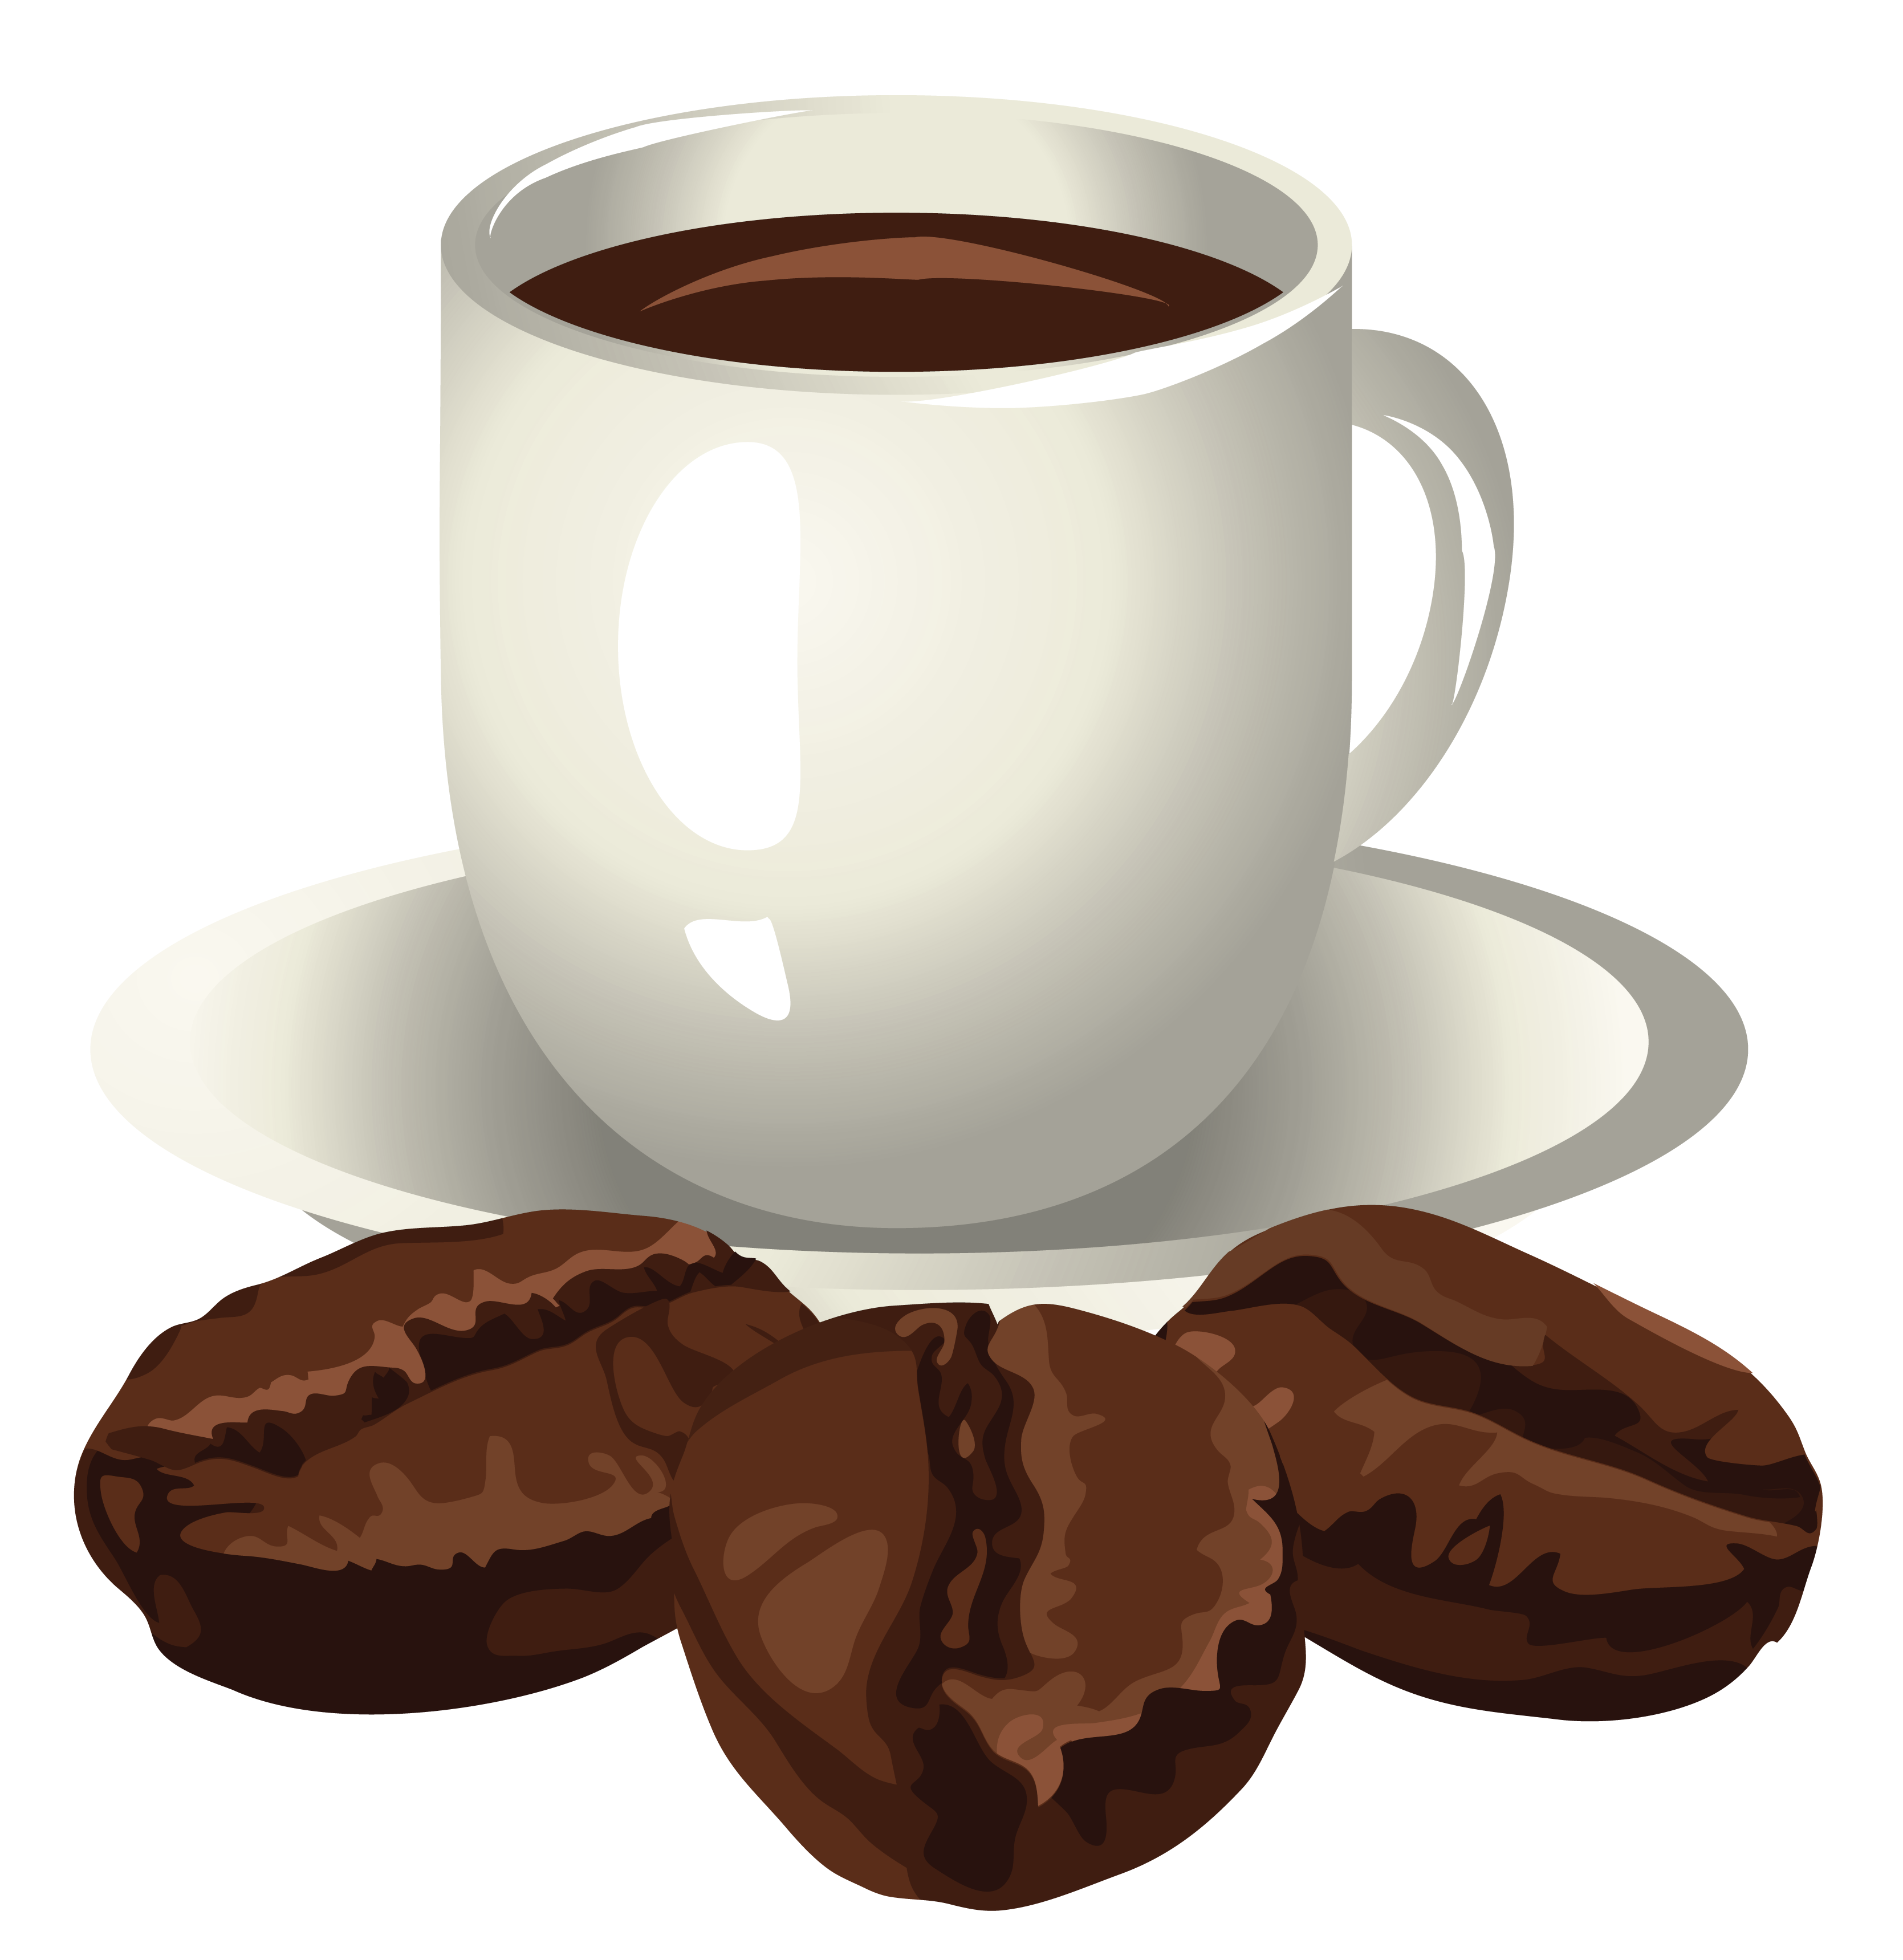 Coffee clipart #3, Download drawings